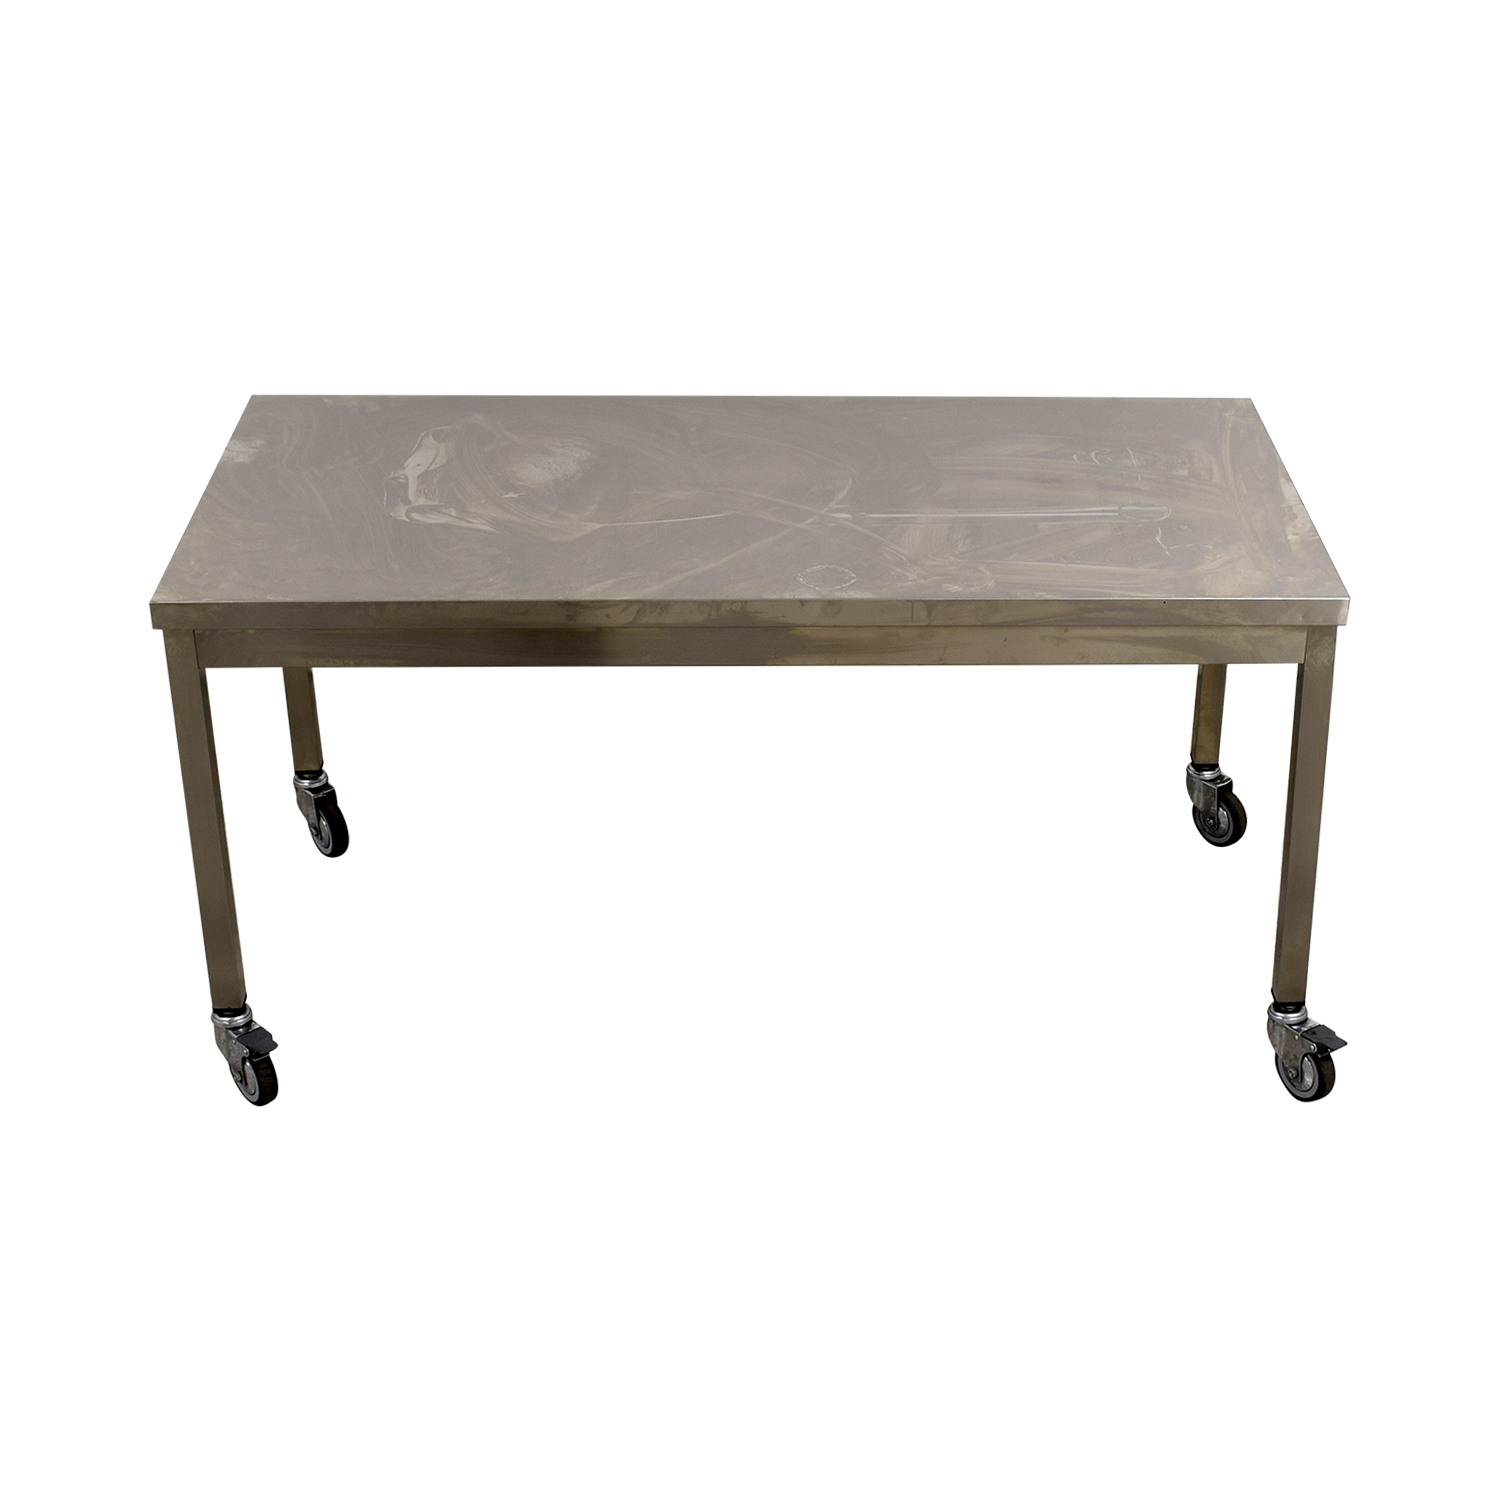 Wheeled Utility Metal Table price